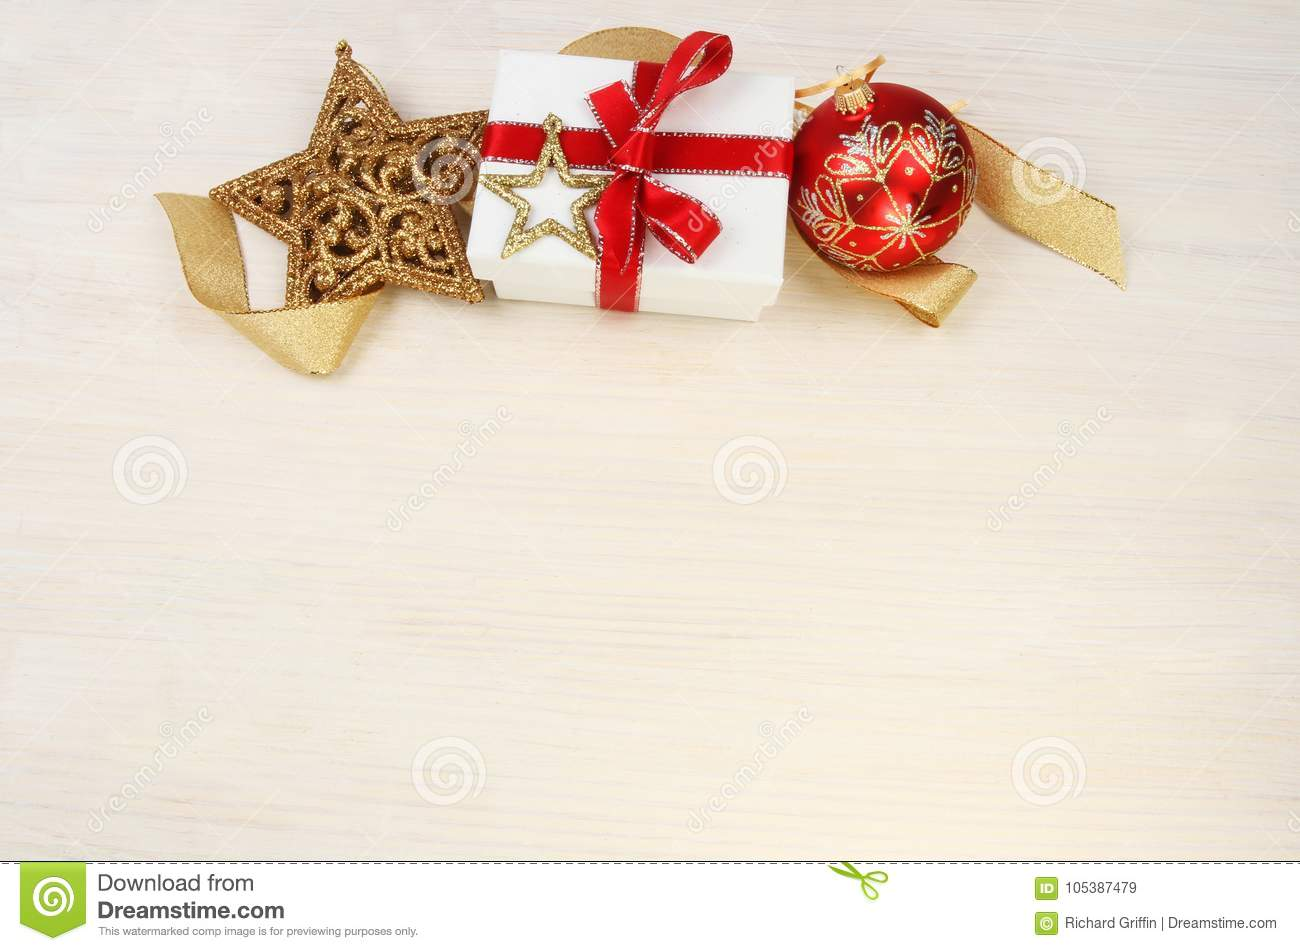 Download Christmas gift theme stock image. Image of bauble, glitter - 105387479